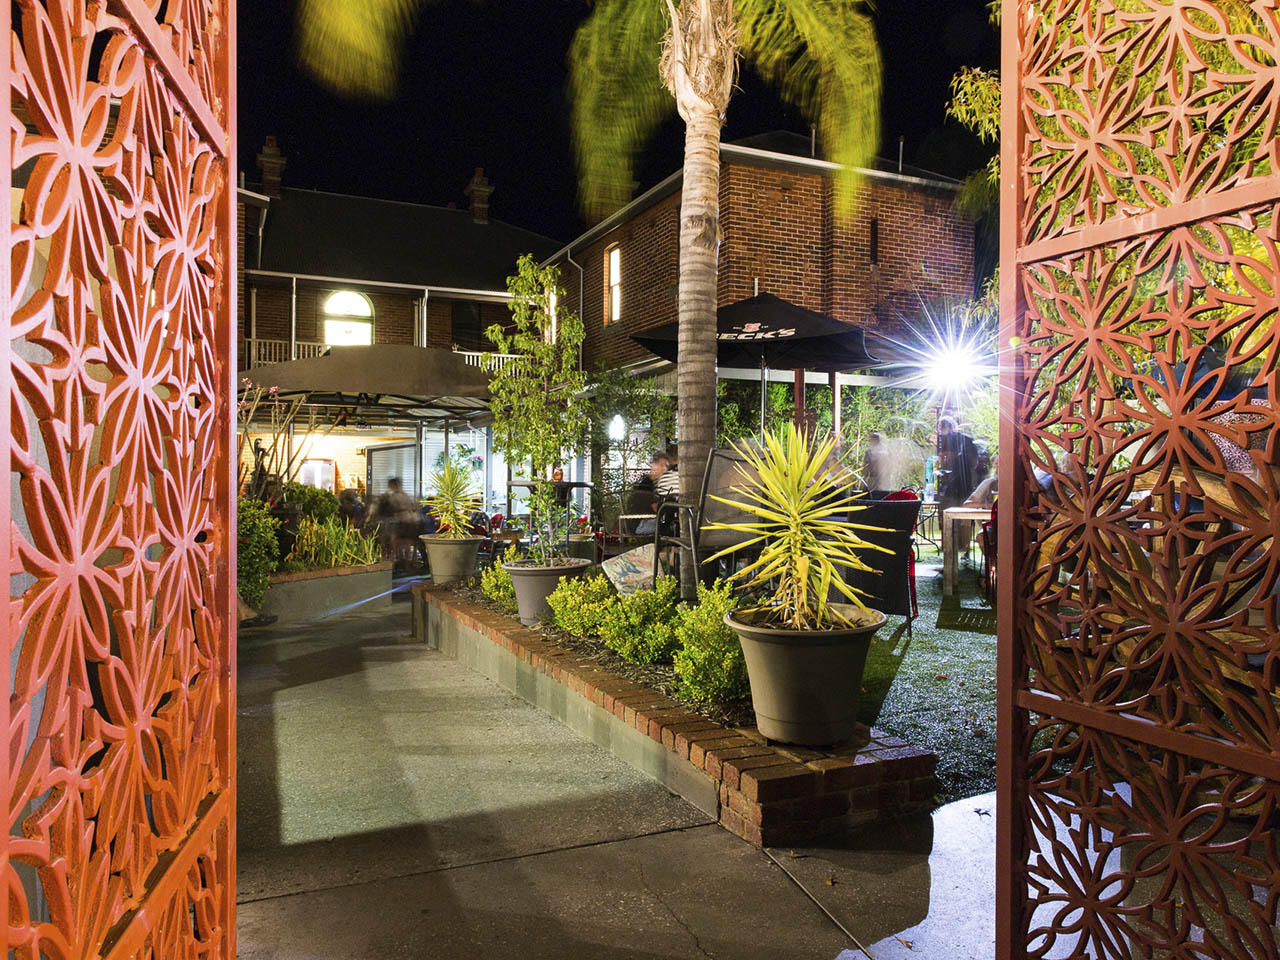 Garden Bar with Plants and Coco Tree and Dukes Inn's Building Behind